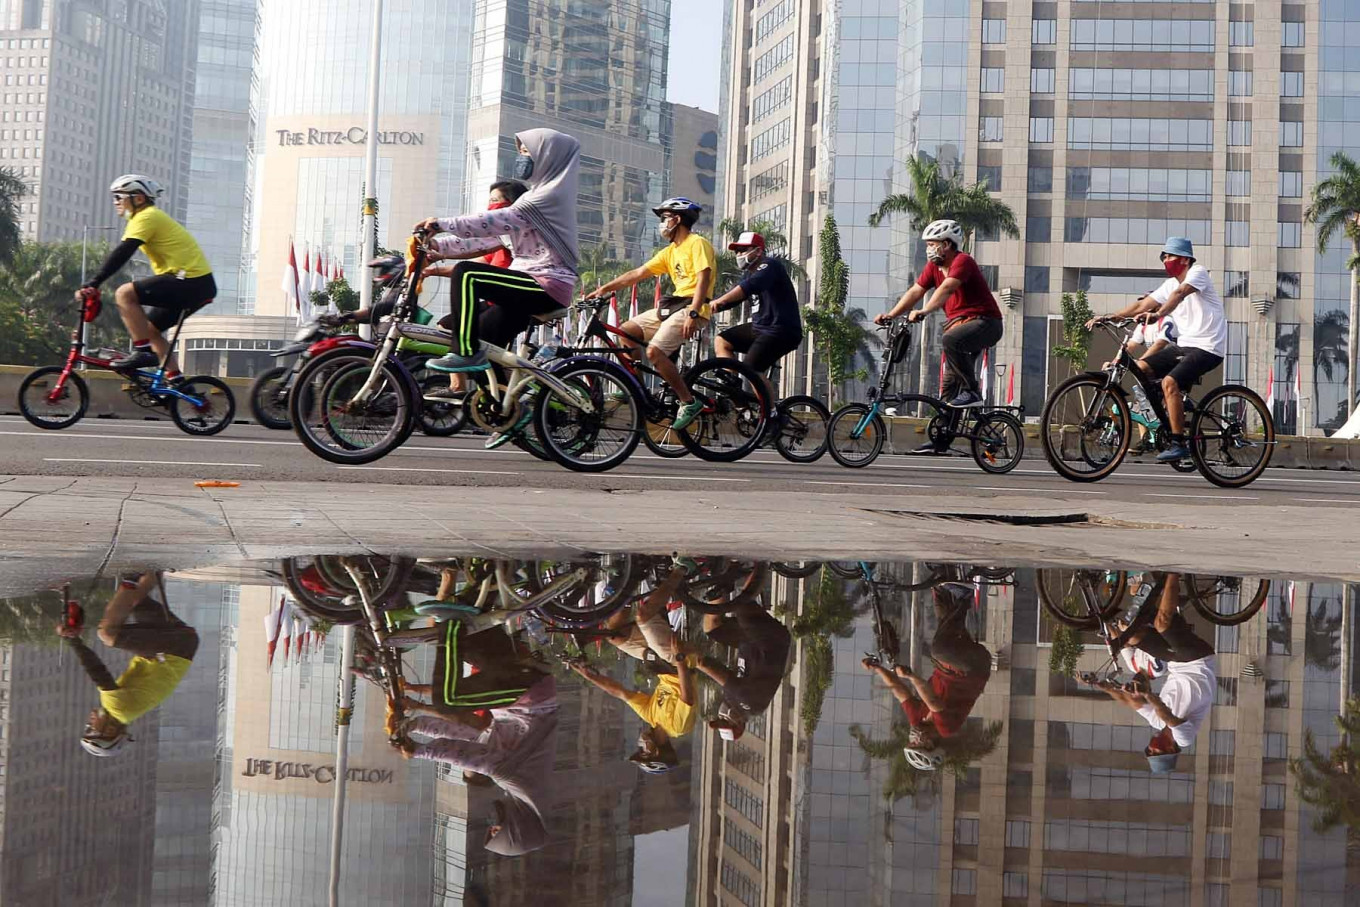 Cyclists ride along Jl. Sudirman in Jakarta on Aug. 9. Although the Jakarta administration has canceled the regular Car Free Day (CFD) on Jl. Sudirman and Jl. MH Thamrin, the area is still packed with people who want to exercise.